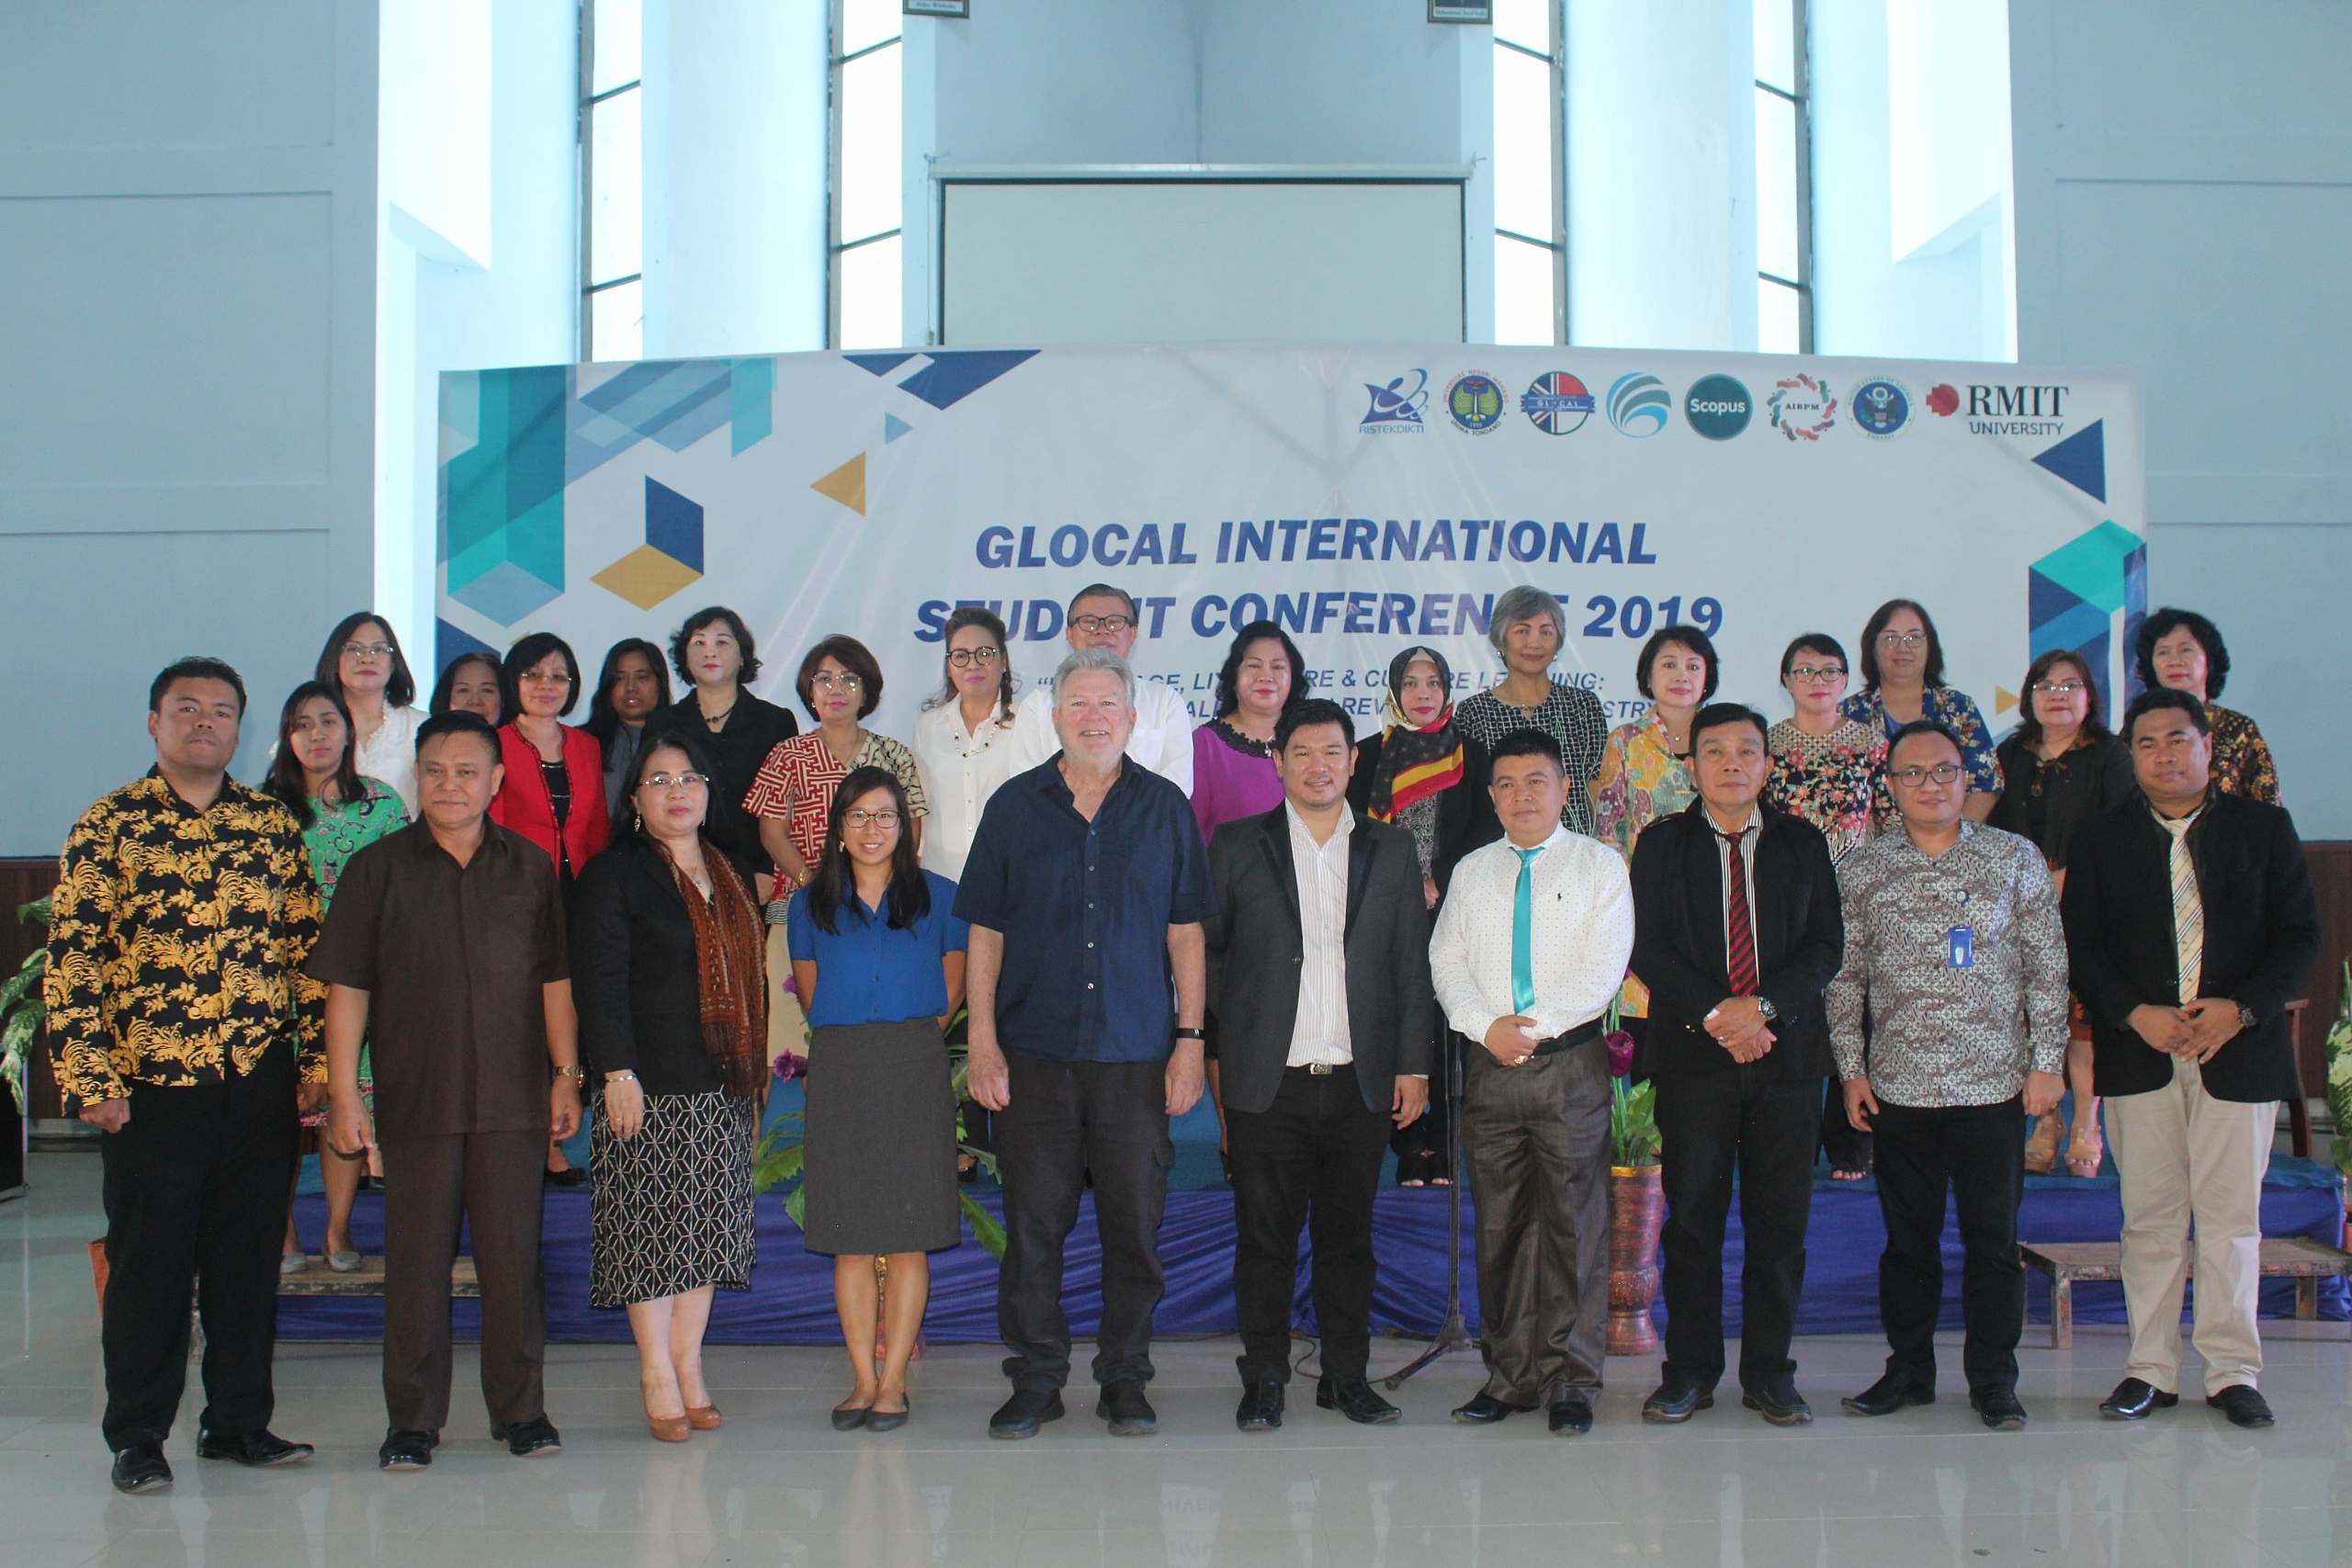 Glocal International Student Conference 2019